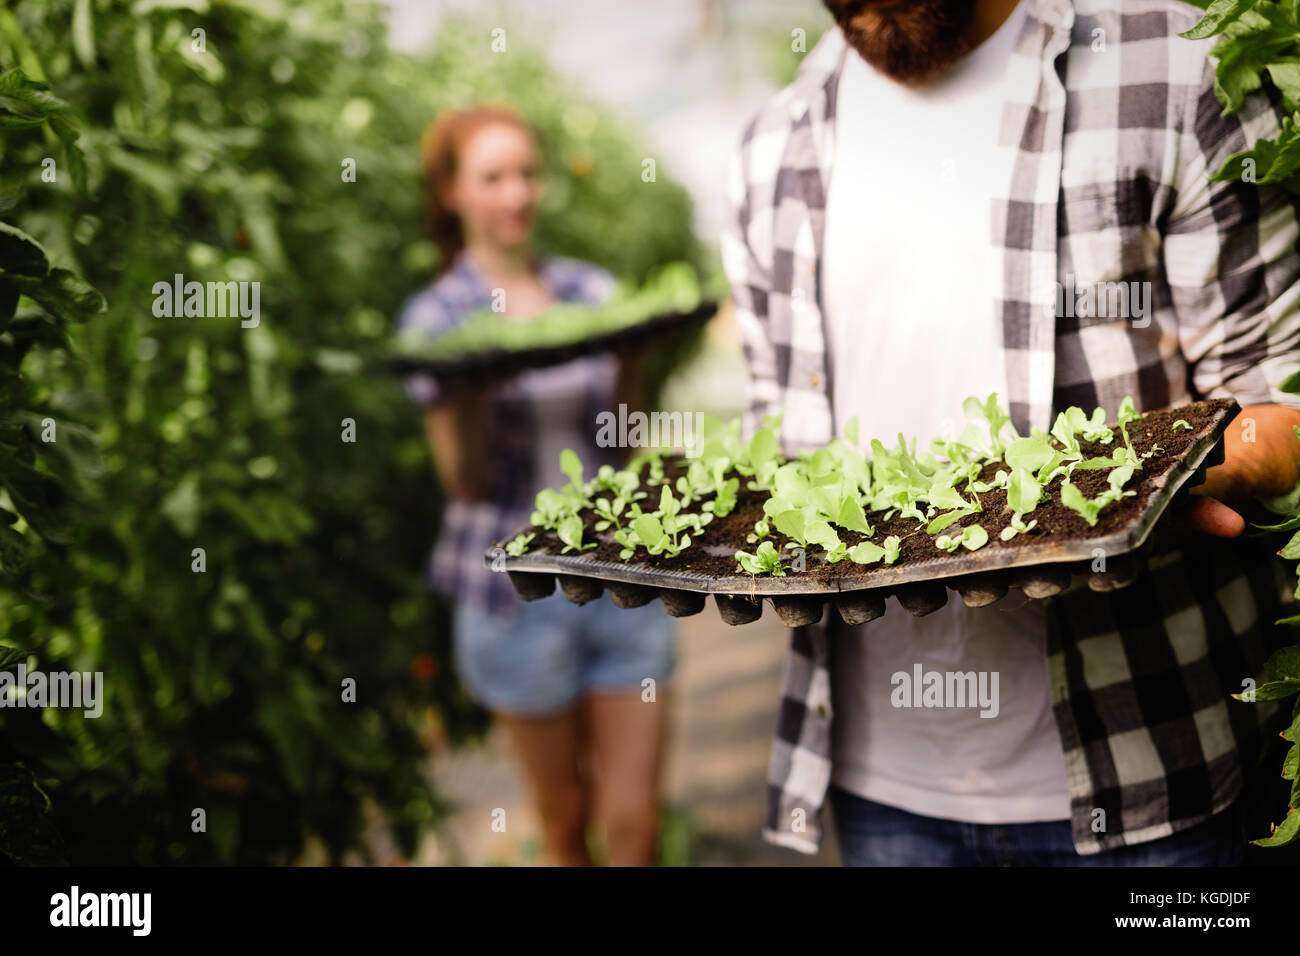 Image of couple of farmers seedling sprouts in garden - Stock Image